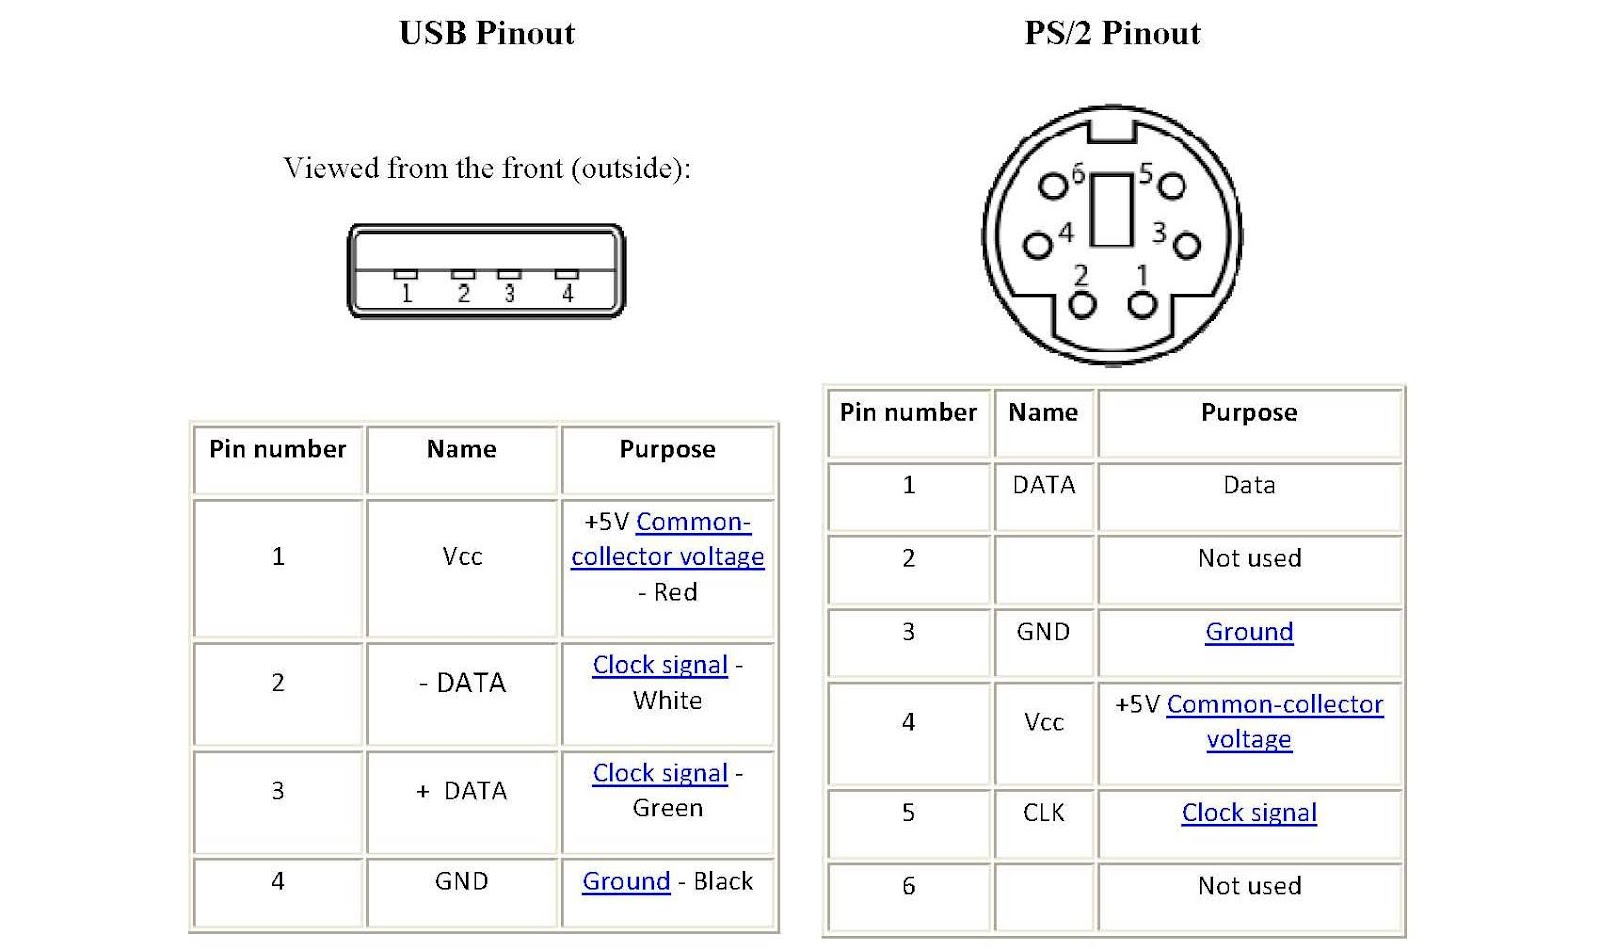 ps usb wiring diagram ps wiring diagrams online ps2 usb wiring diagram ps2 wiring diagrams